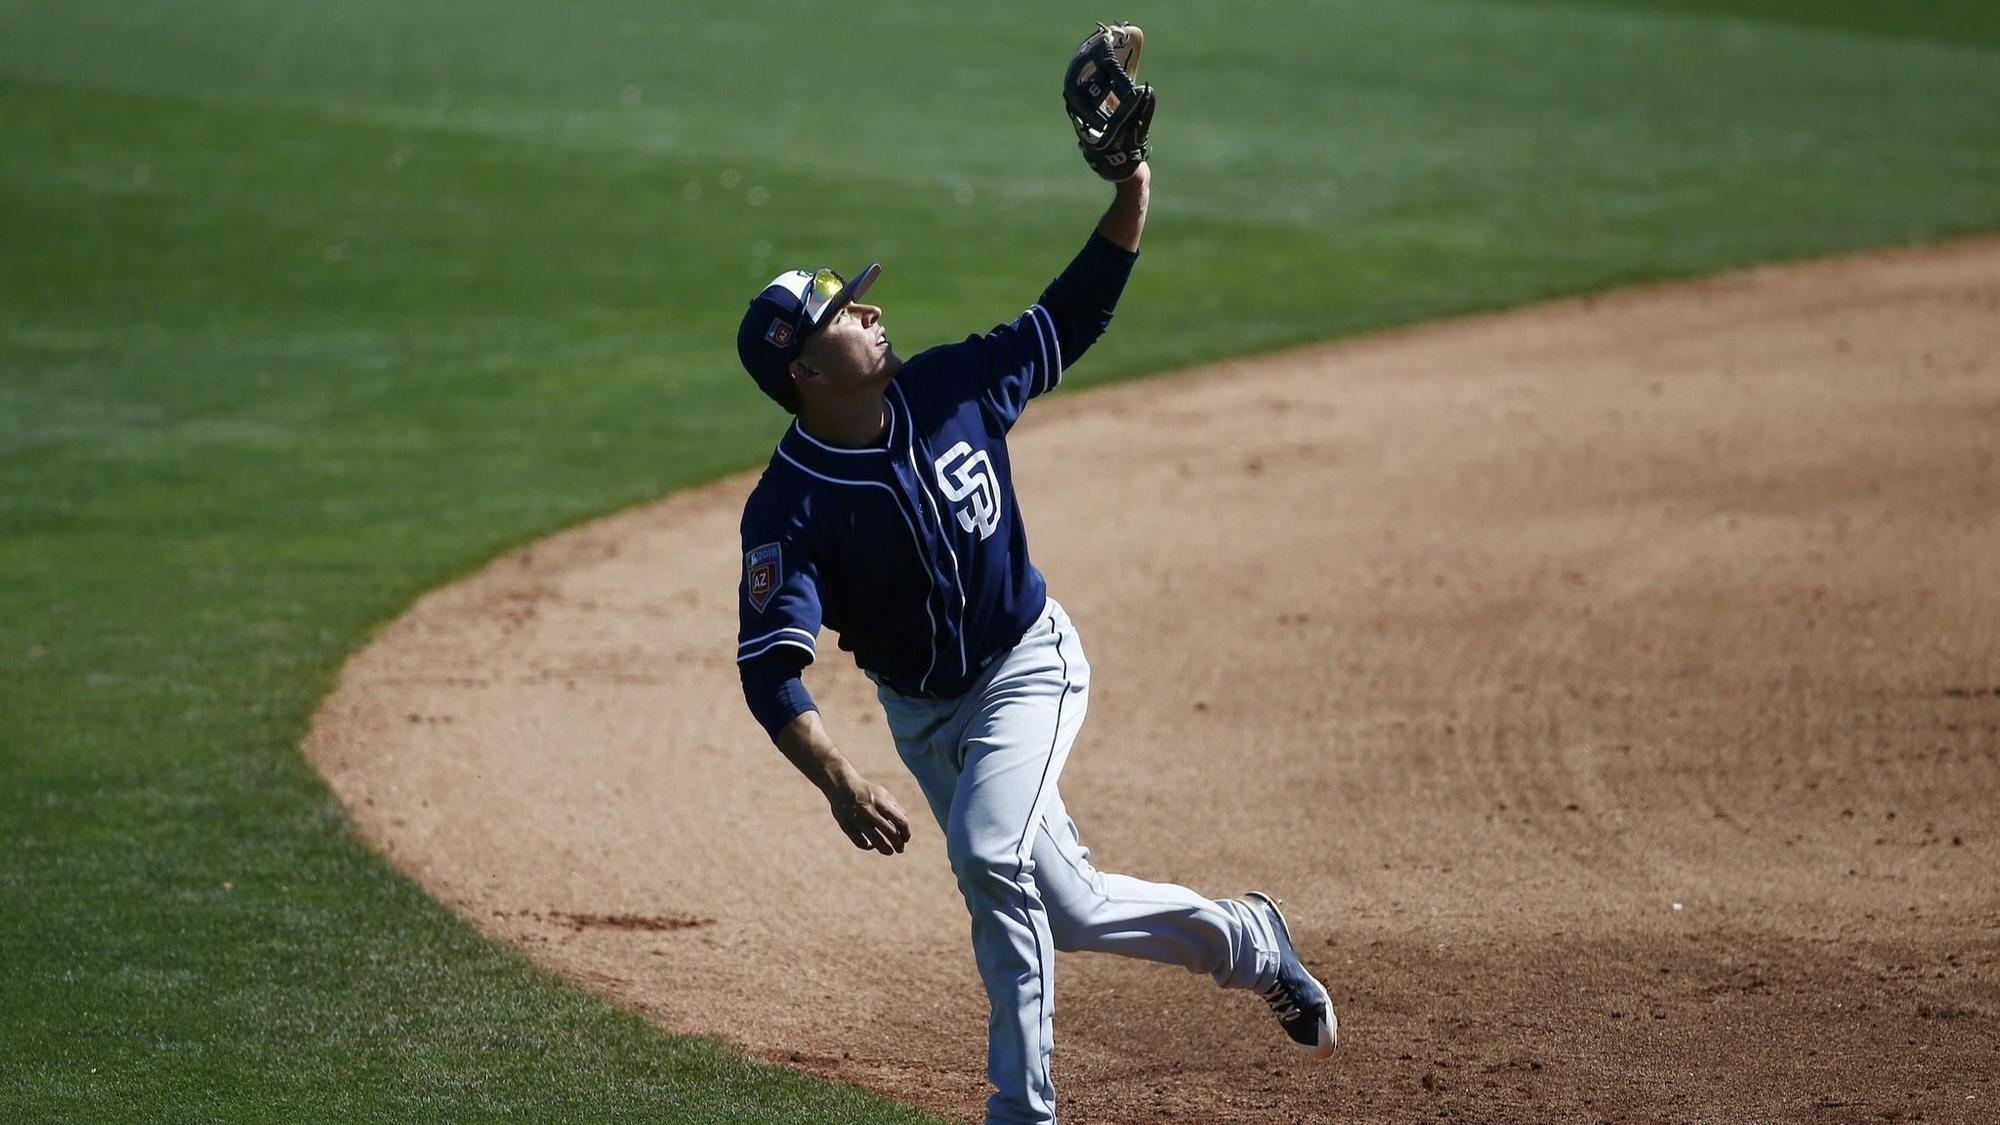 Sd-sp-padres-mexican-league-mlb-ban-0622